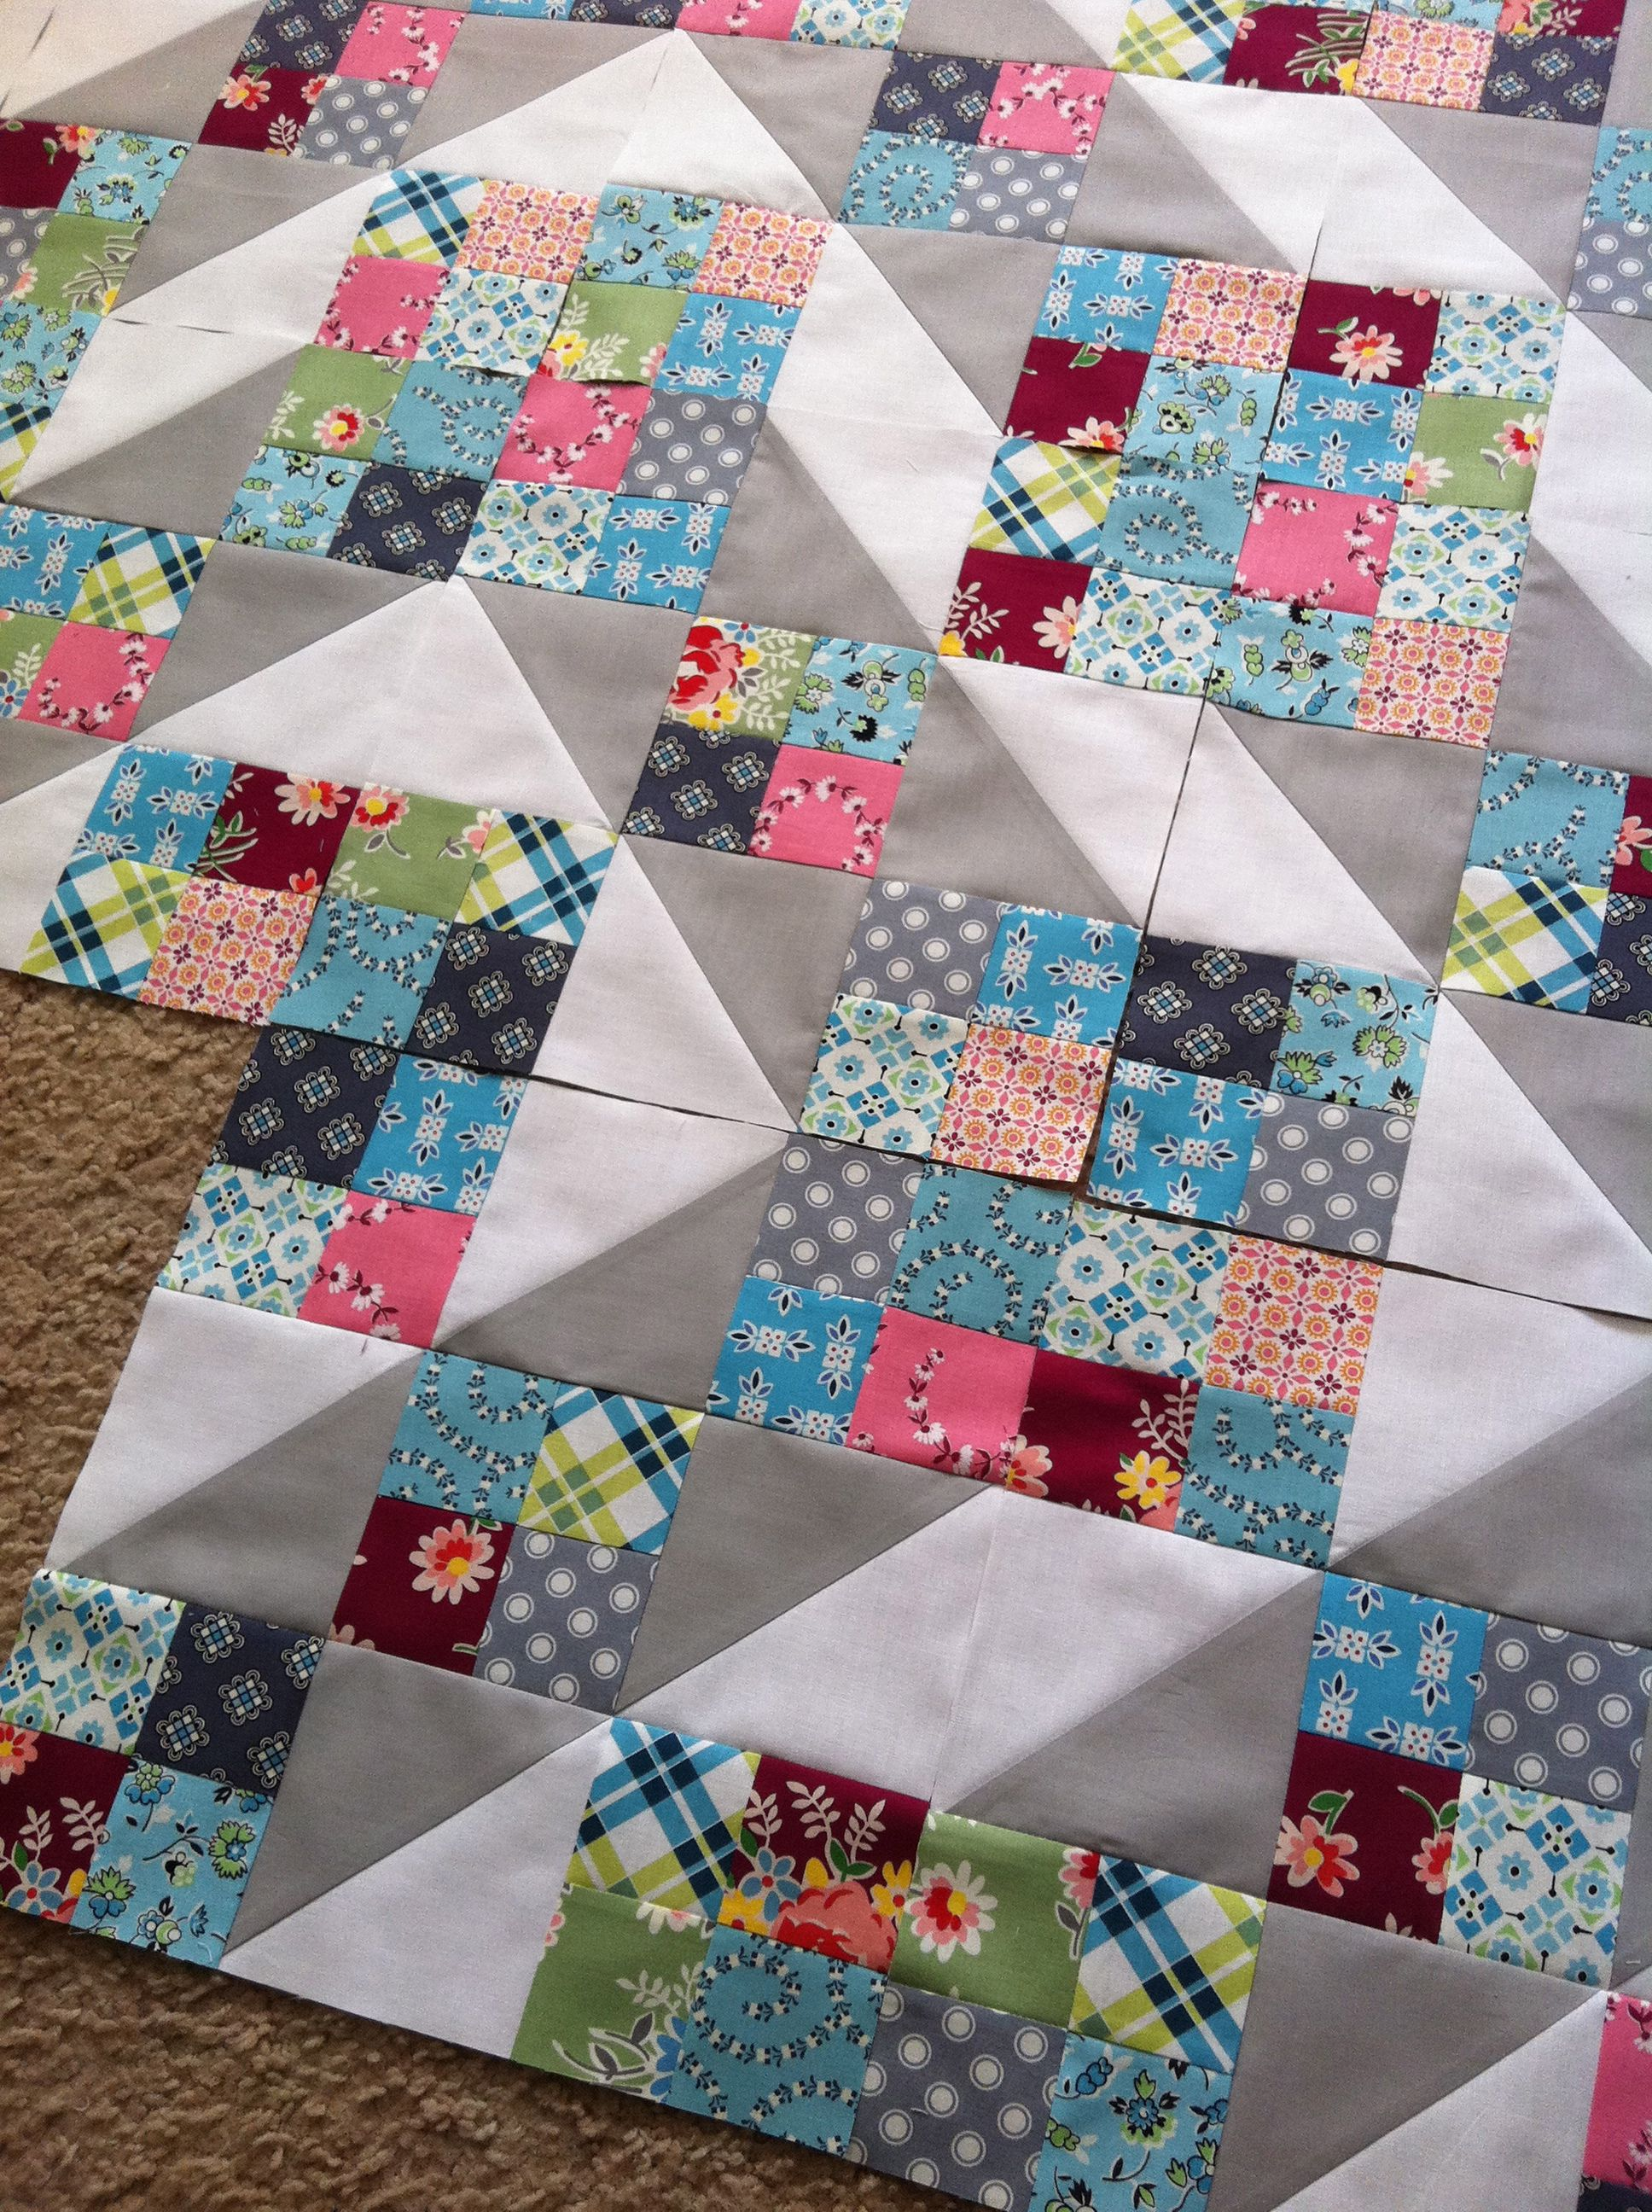 Unexpected Starts | Pinterest | Jelly roll quilt patterns, Jelly ...